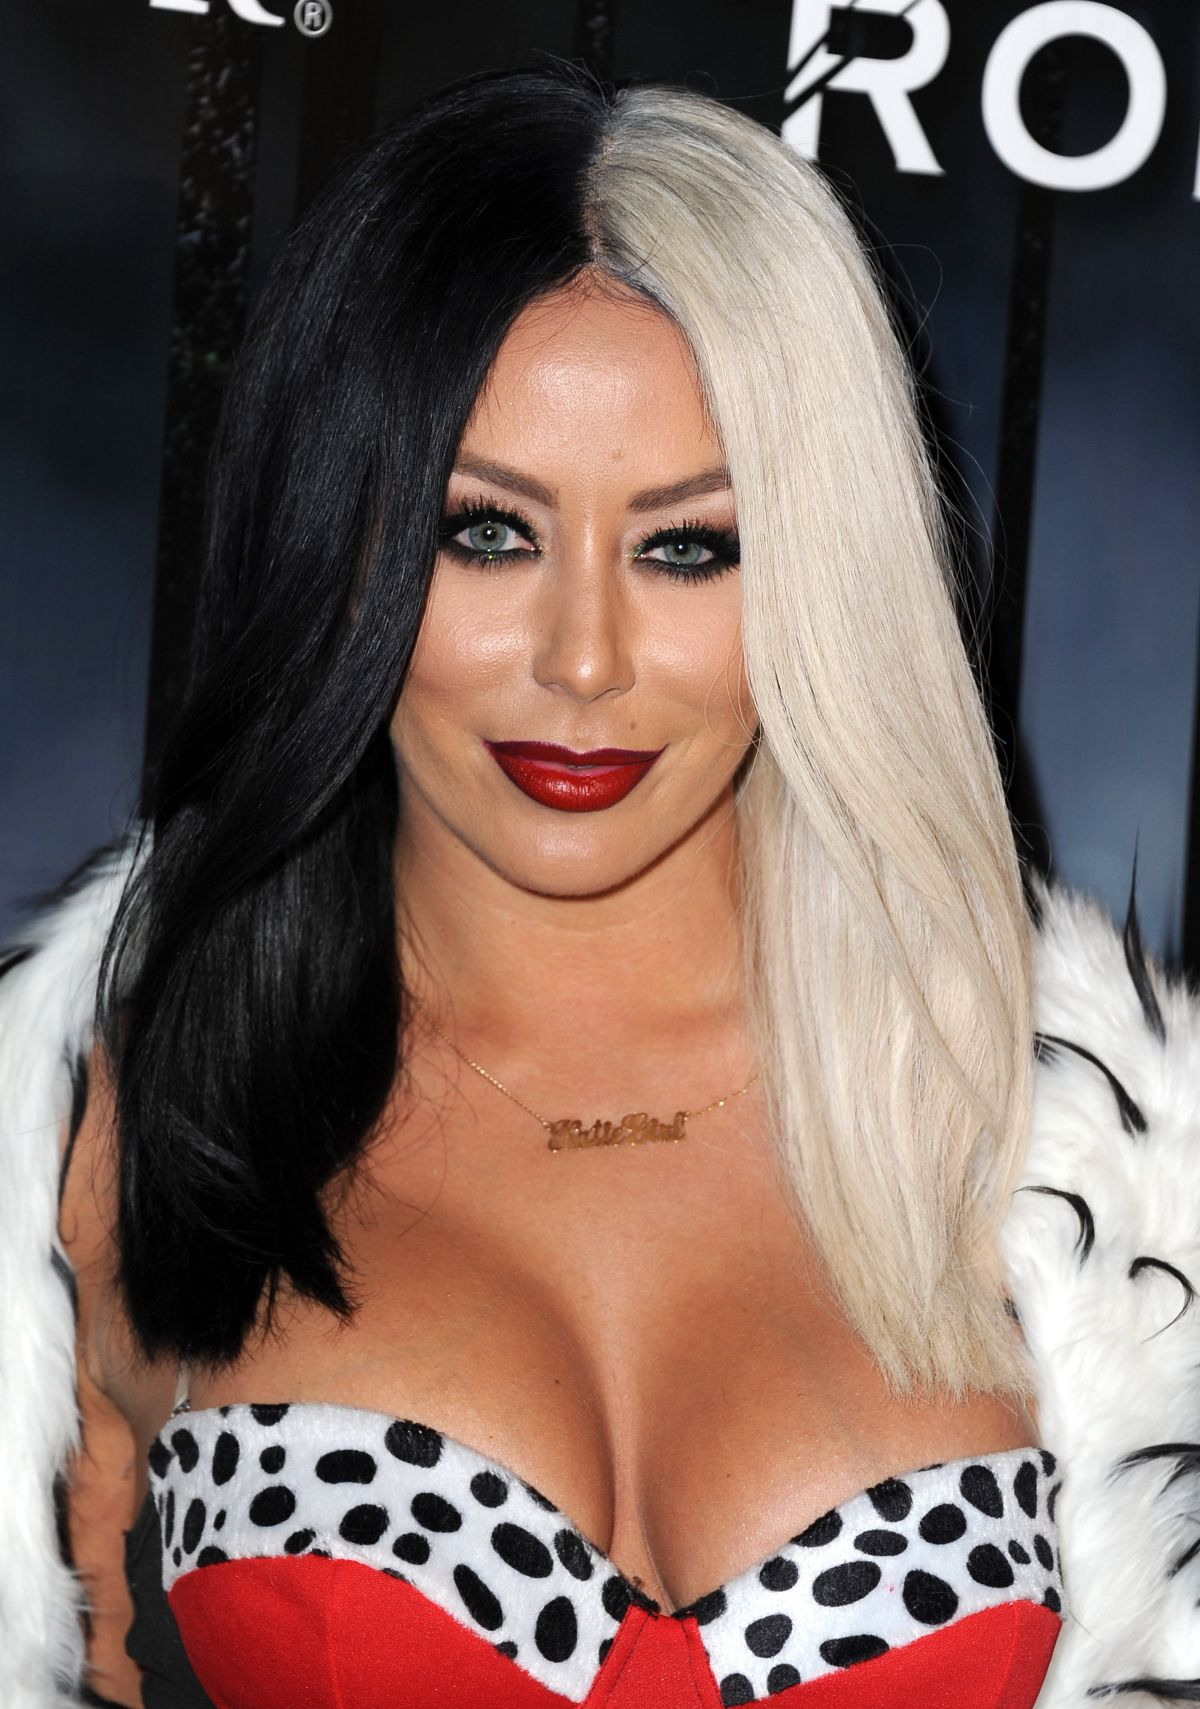 AUBREY O'DAY at Maxim Magazine's Official Halloween Party in